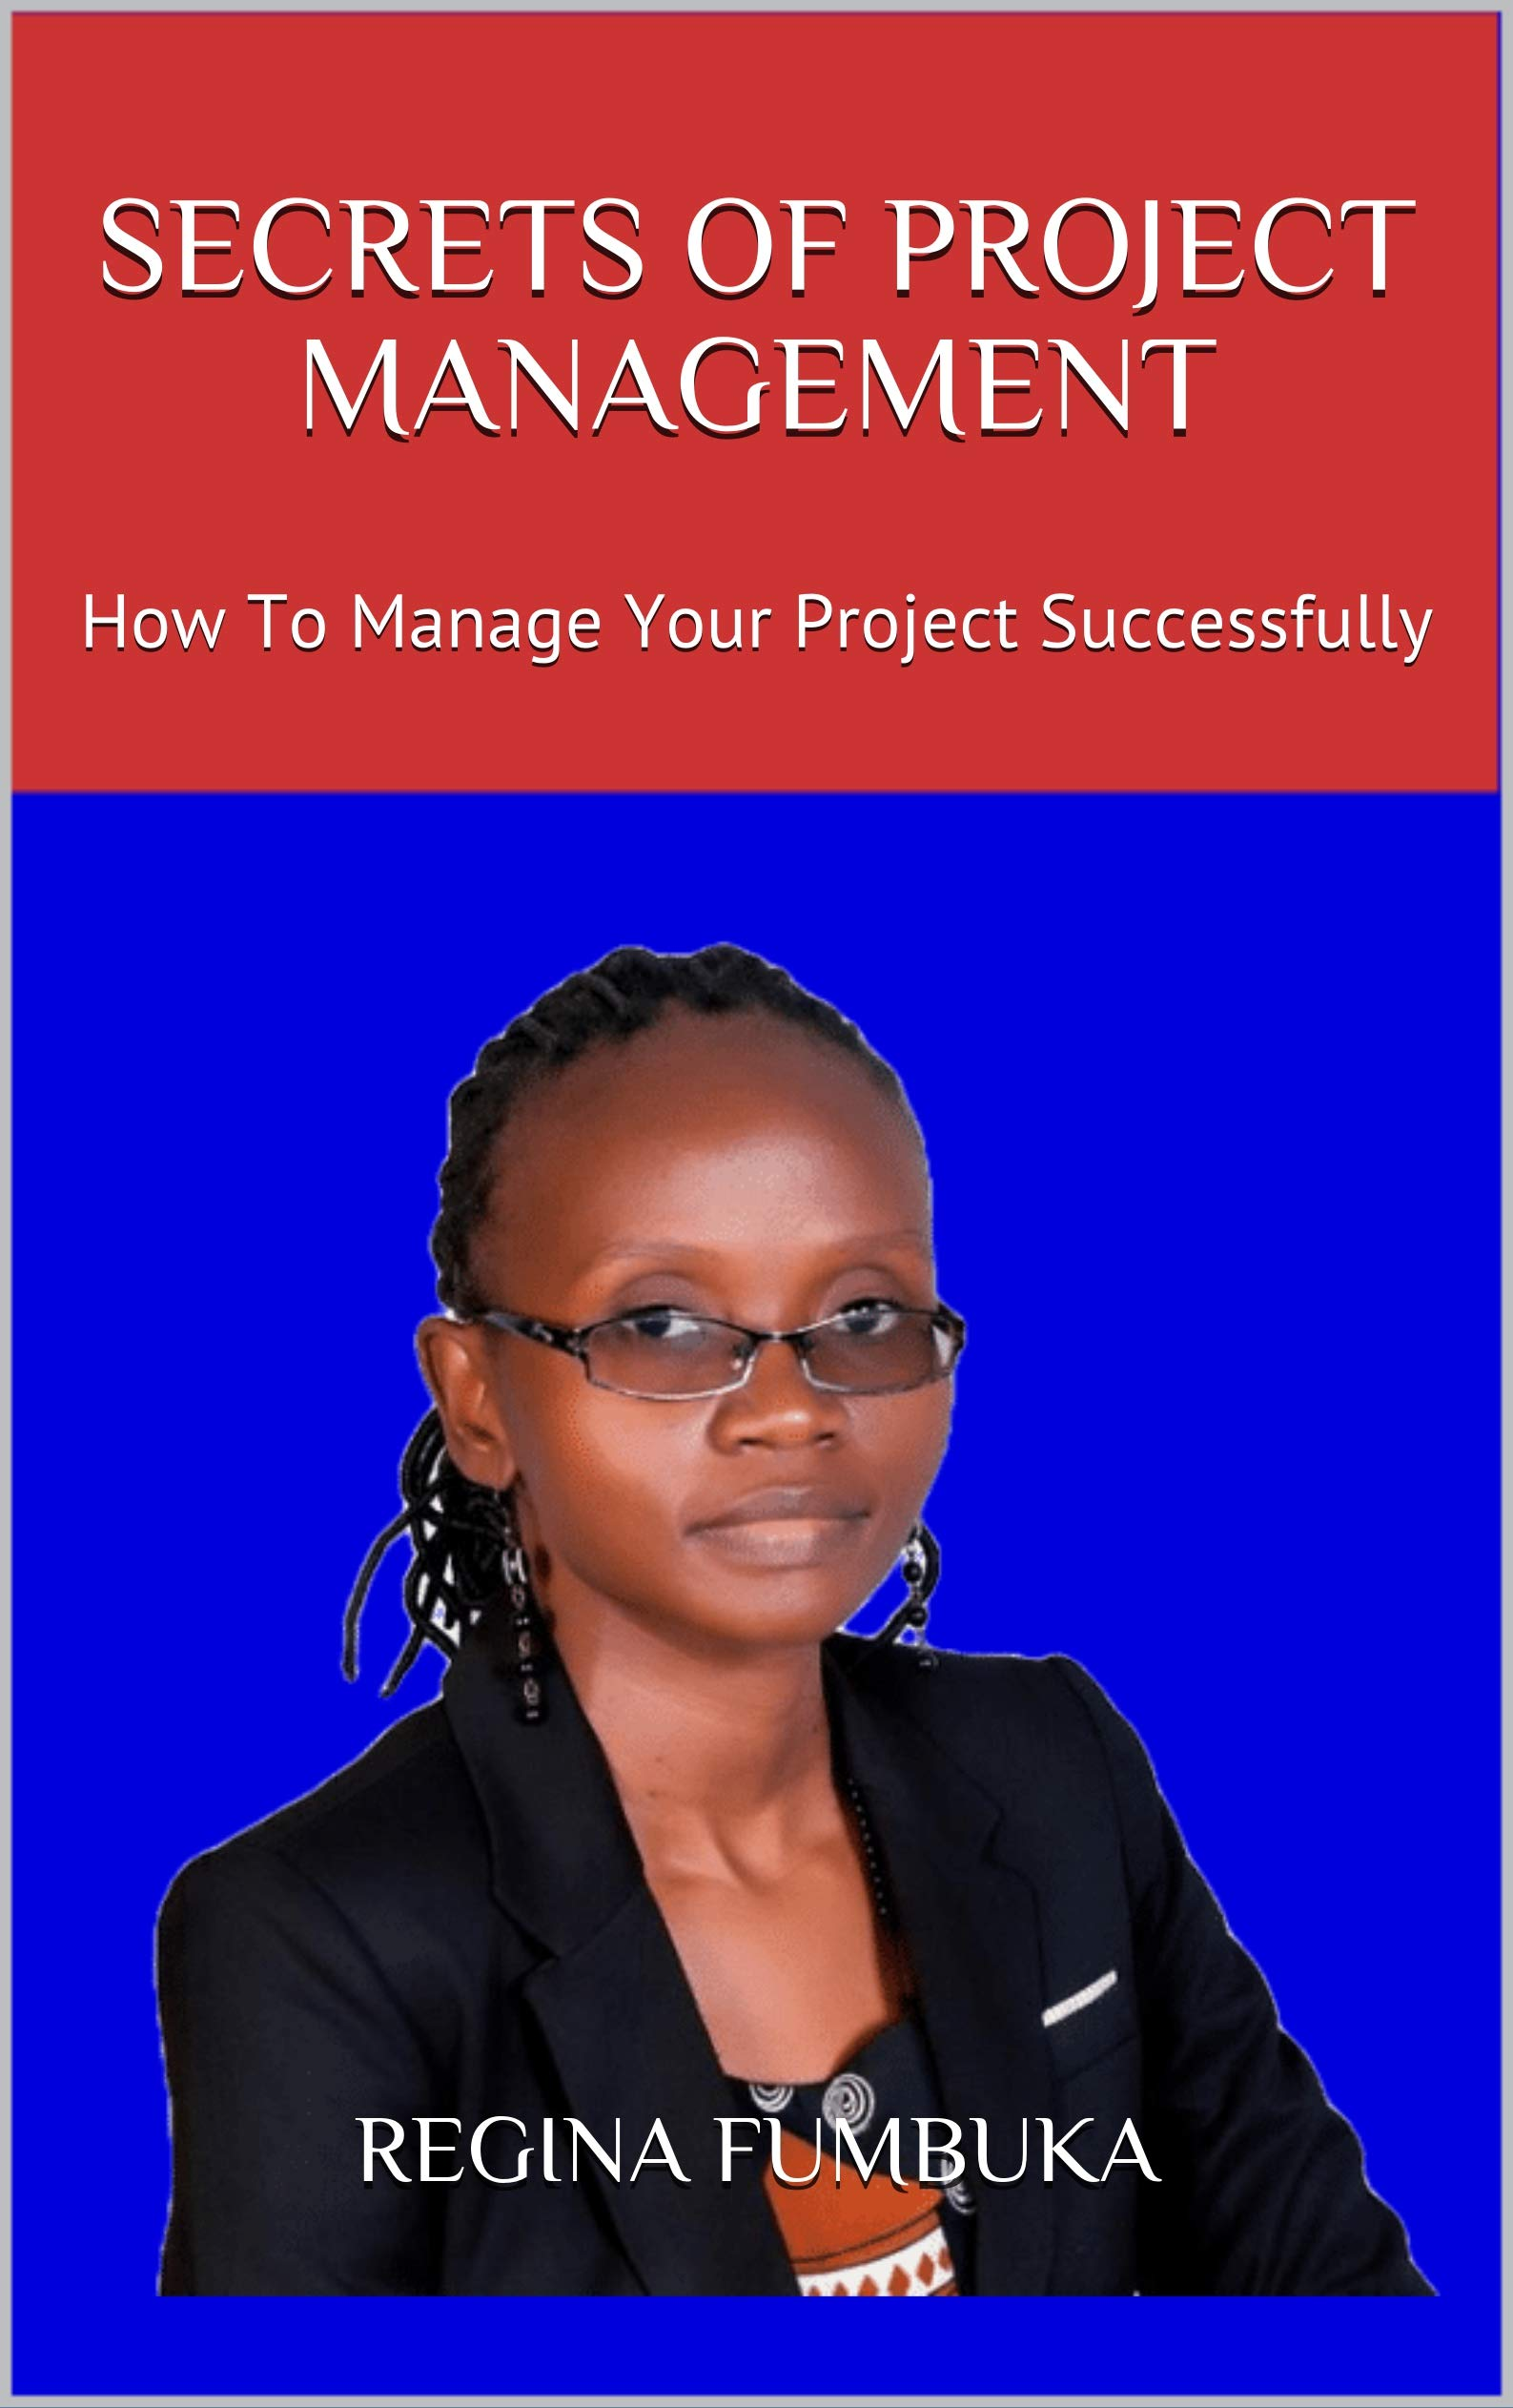 SECRETS OF PROJECT MANAGEMENT: How To Manage Your Project Successfully